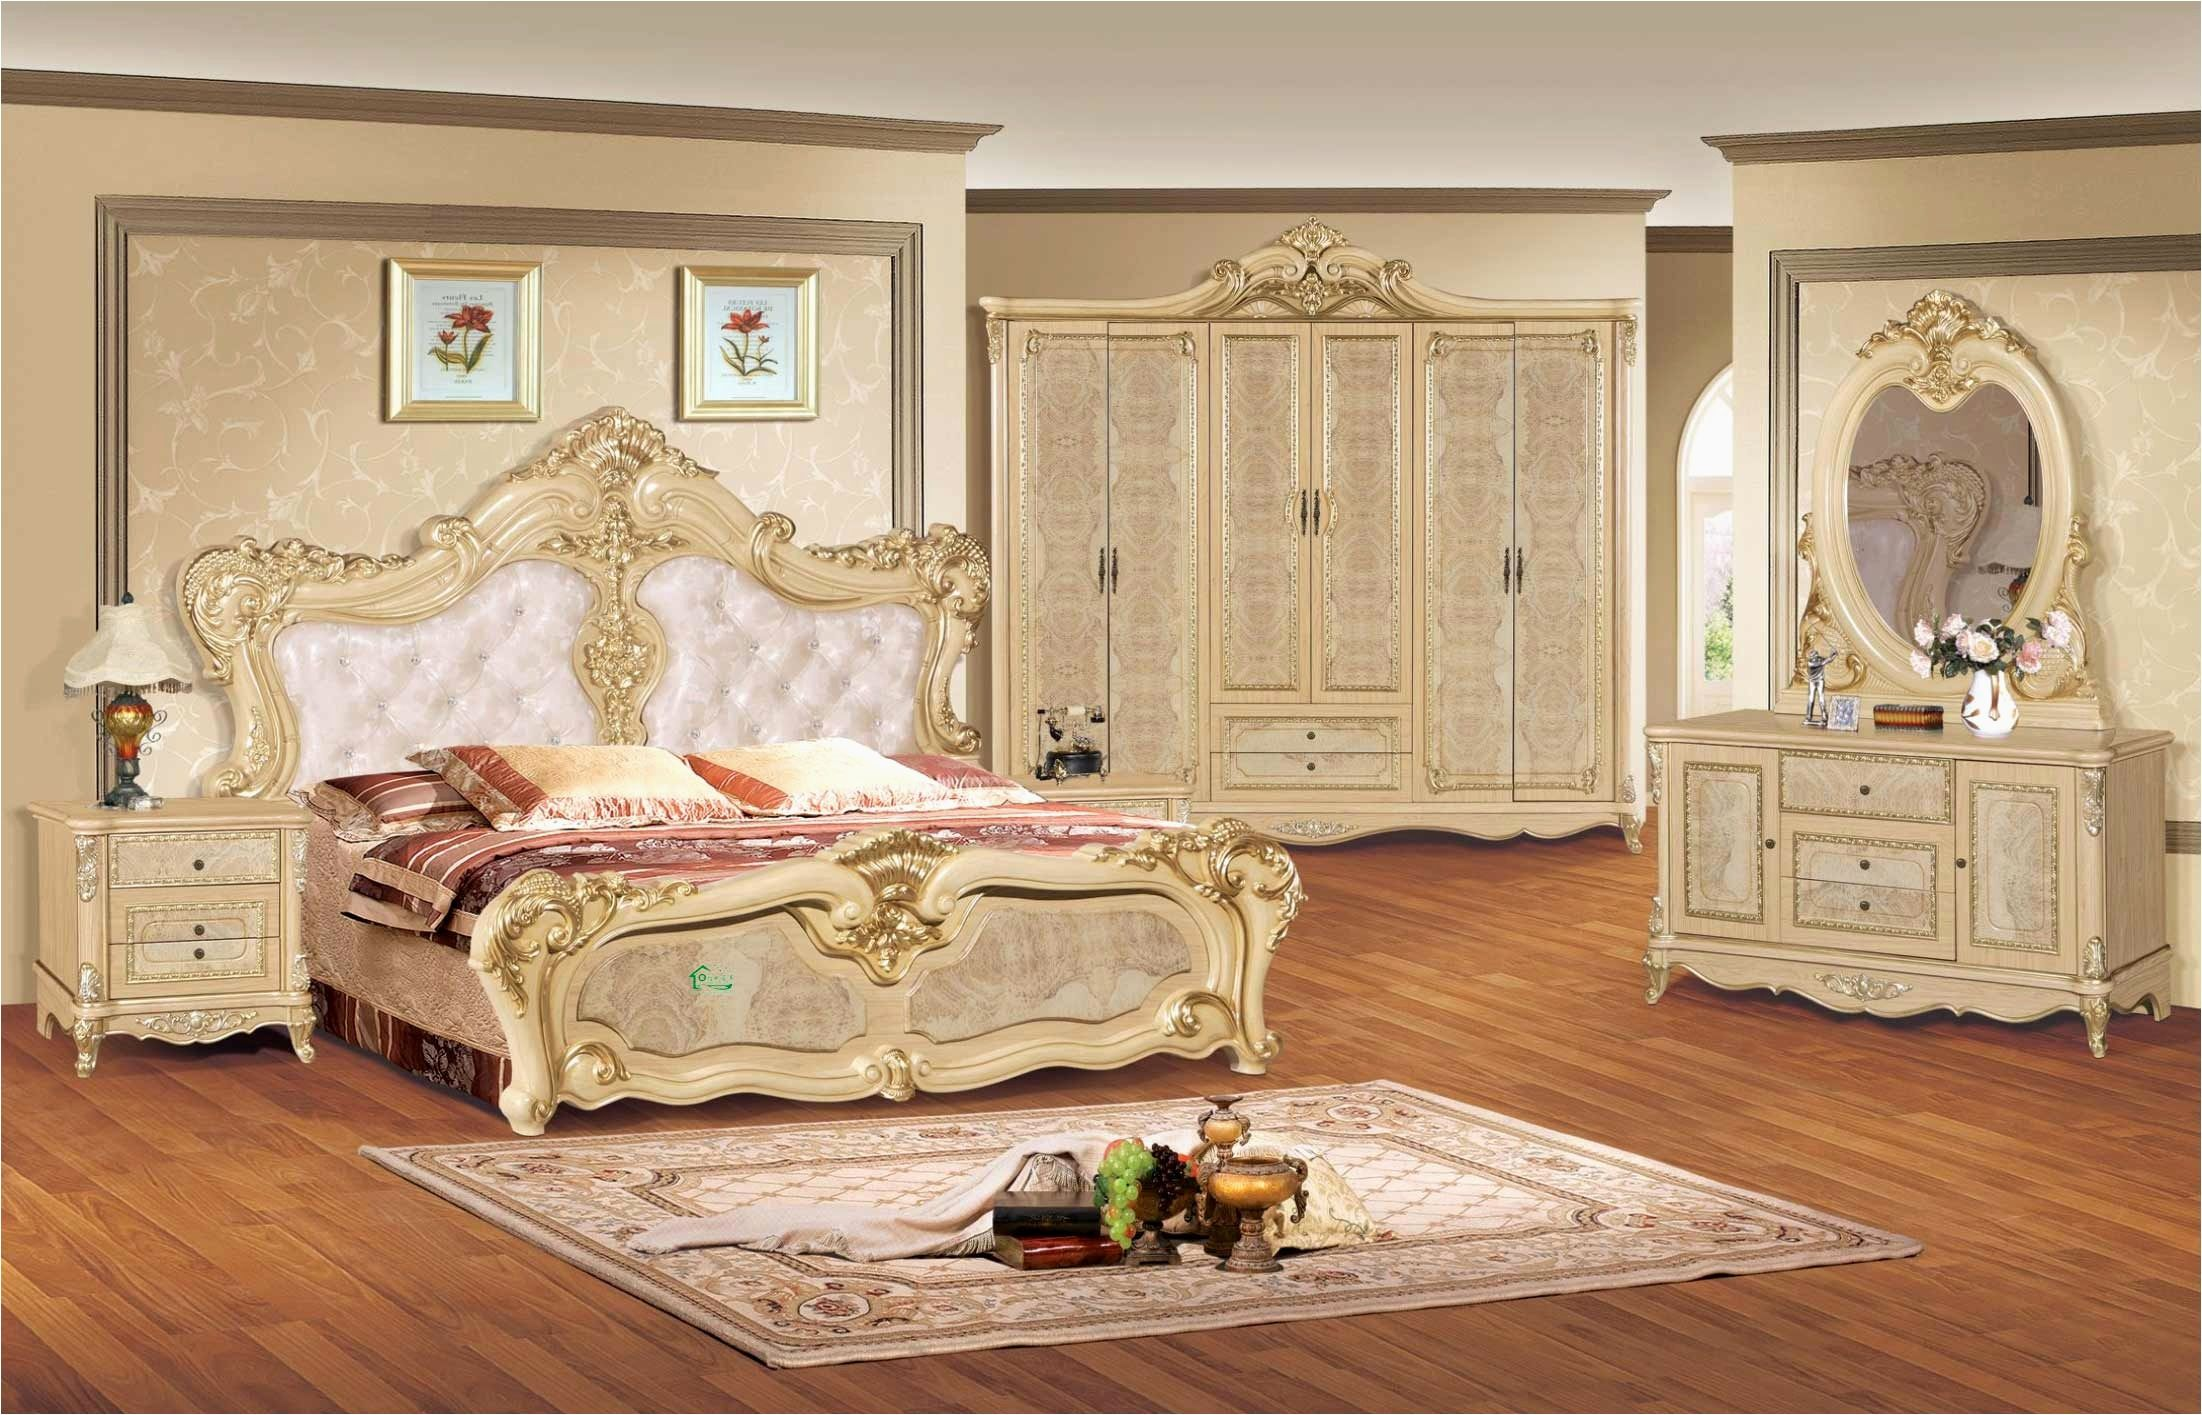 Groovy Bedroom Furniture Set From China Download Free Architecture Designs Rallybritishbridgeorg